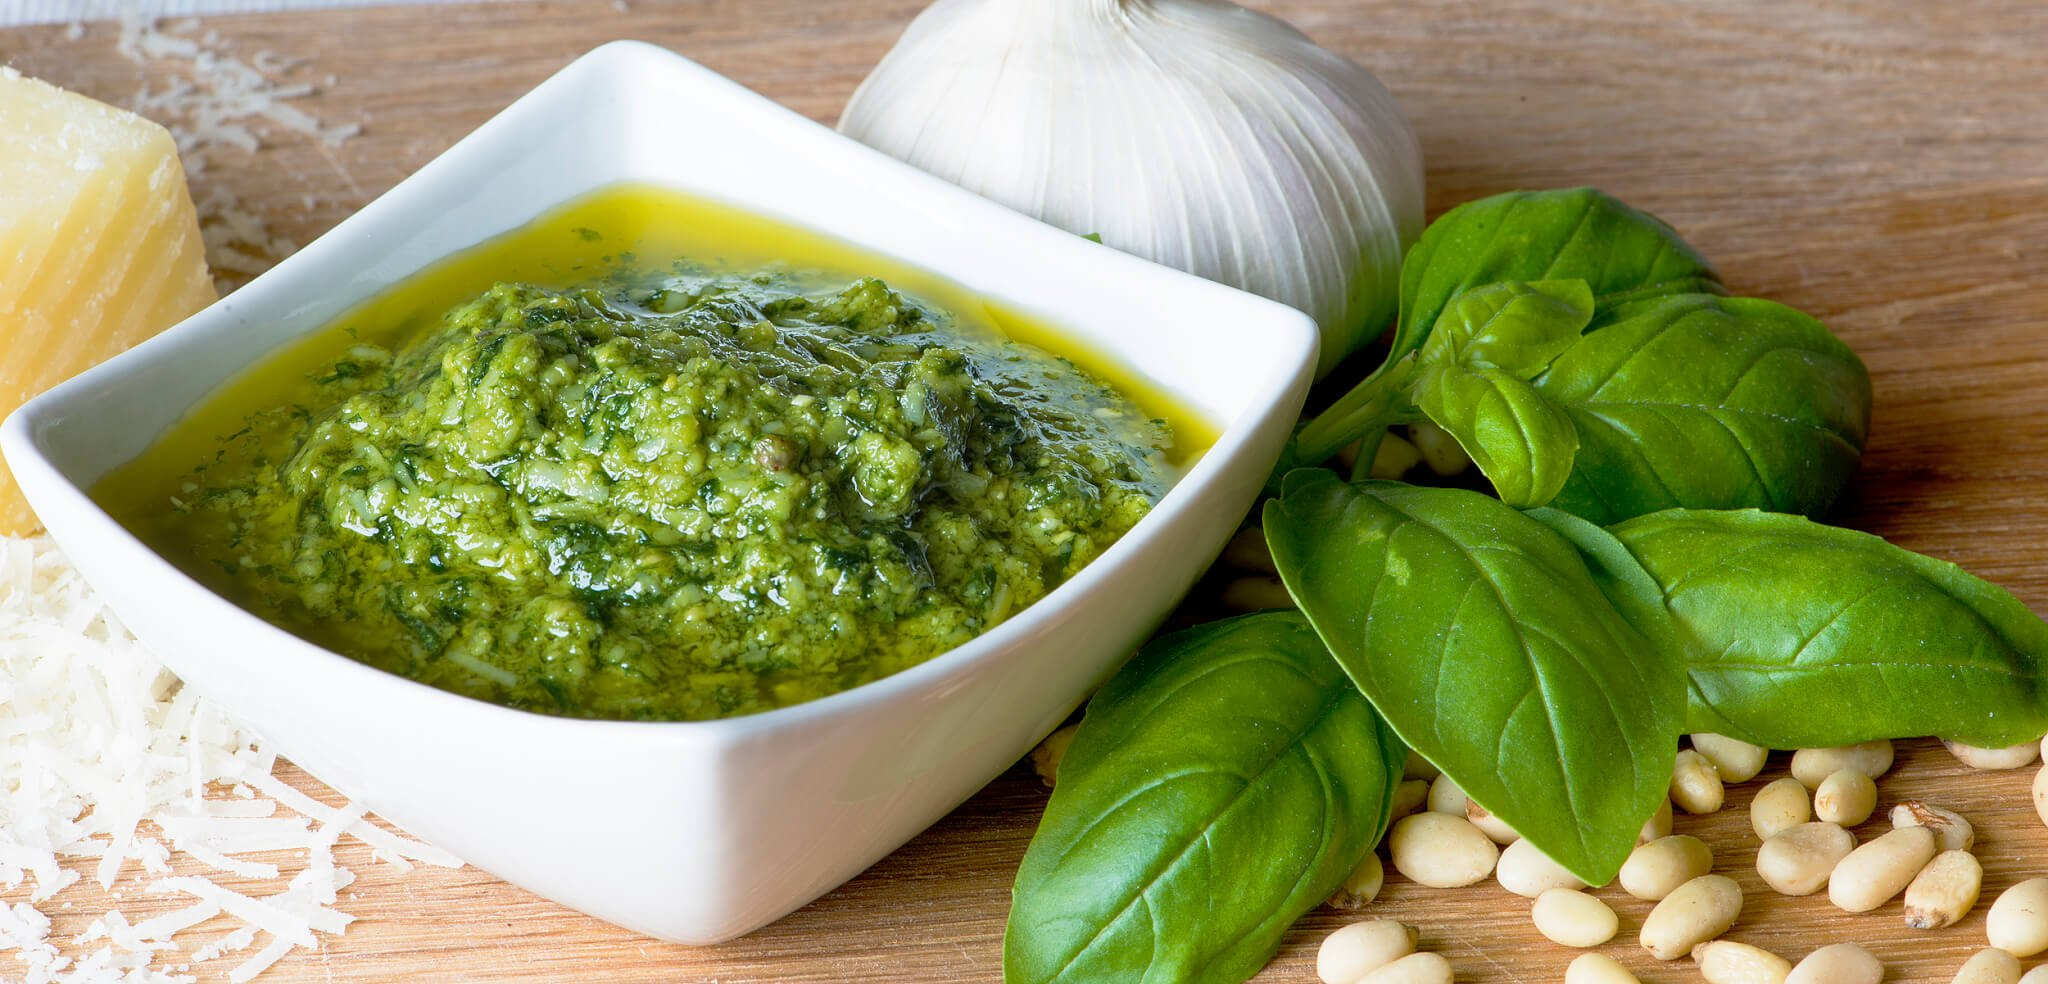 dr Gundry's basil pesto recipe